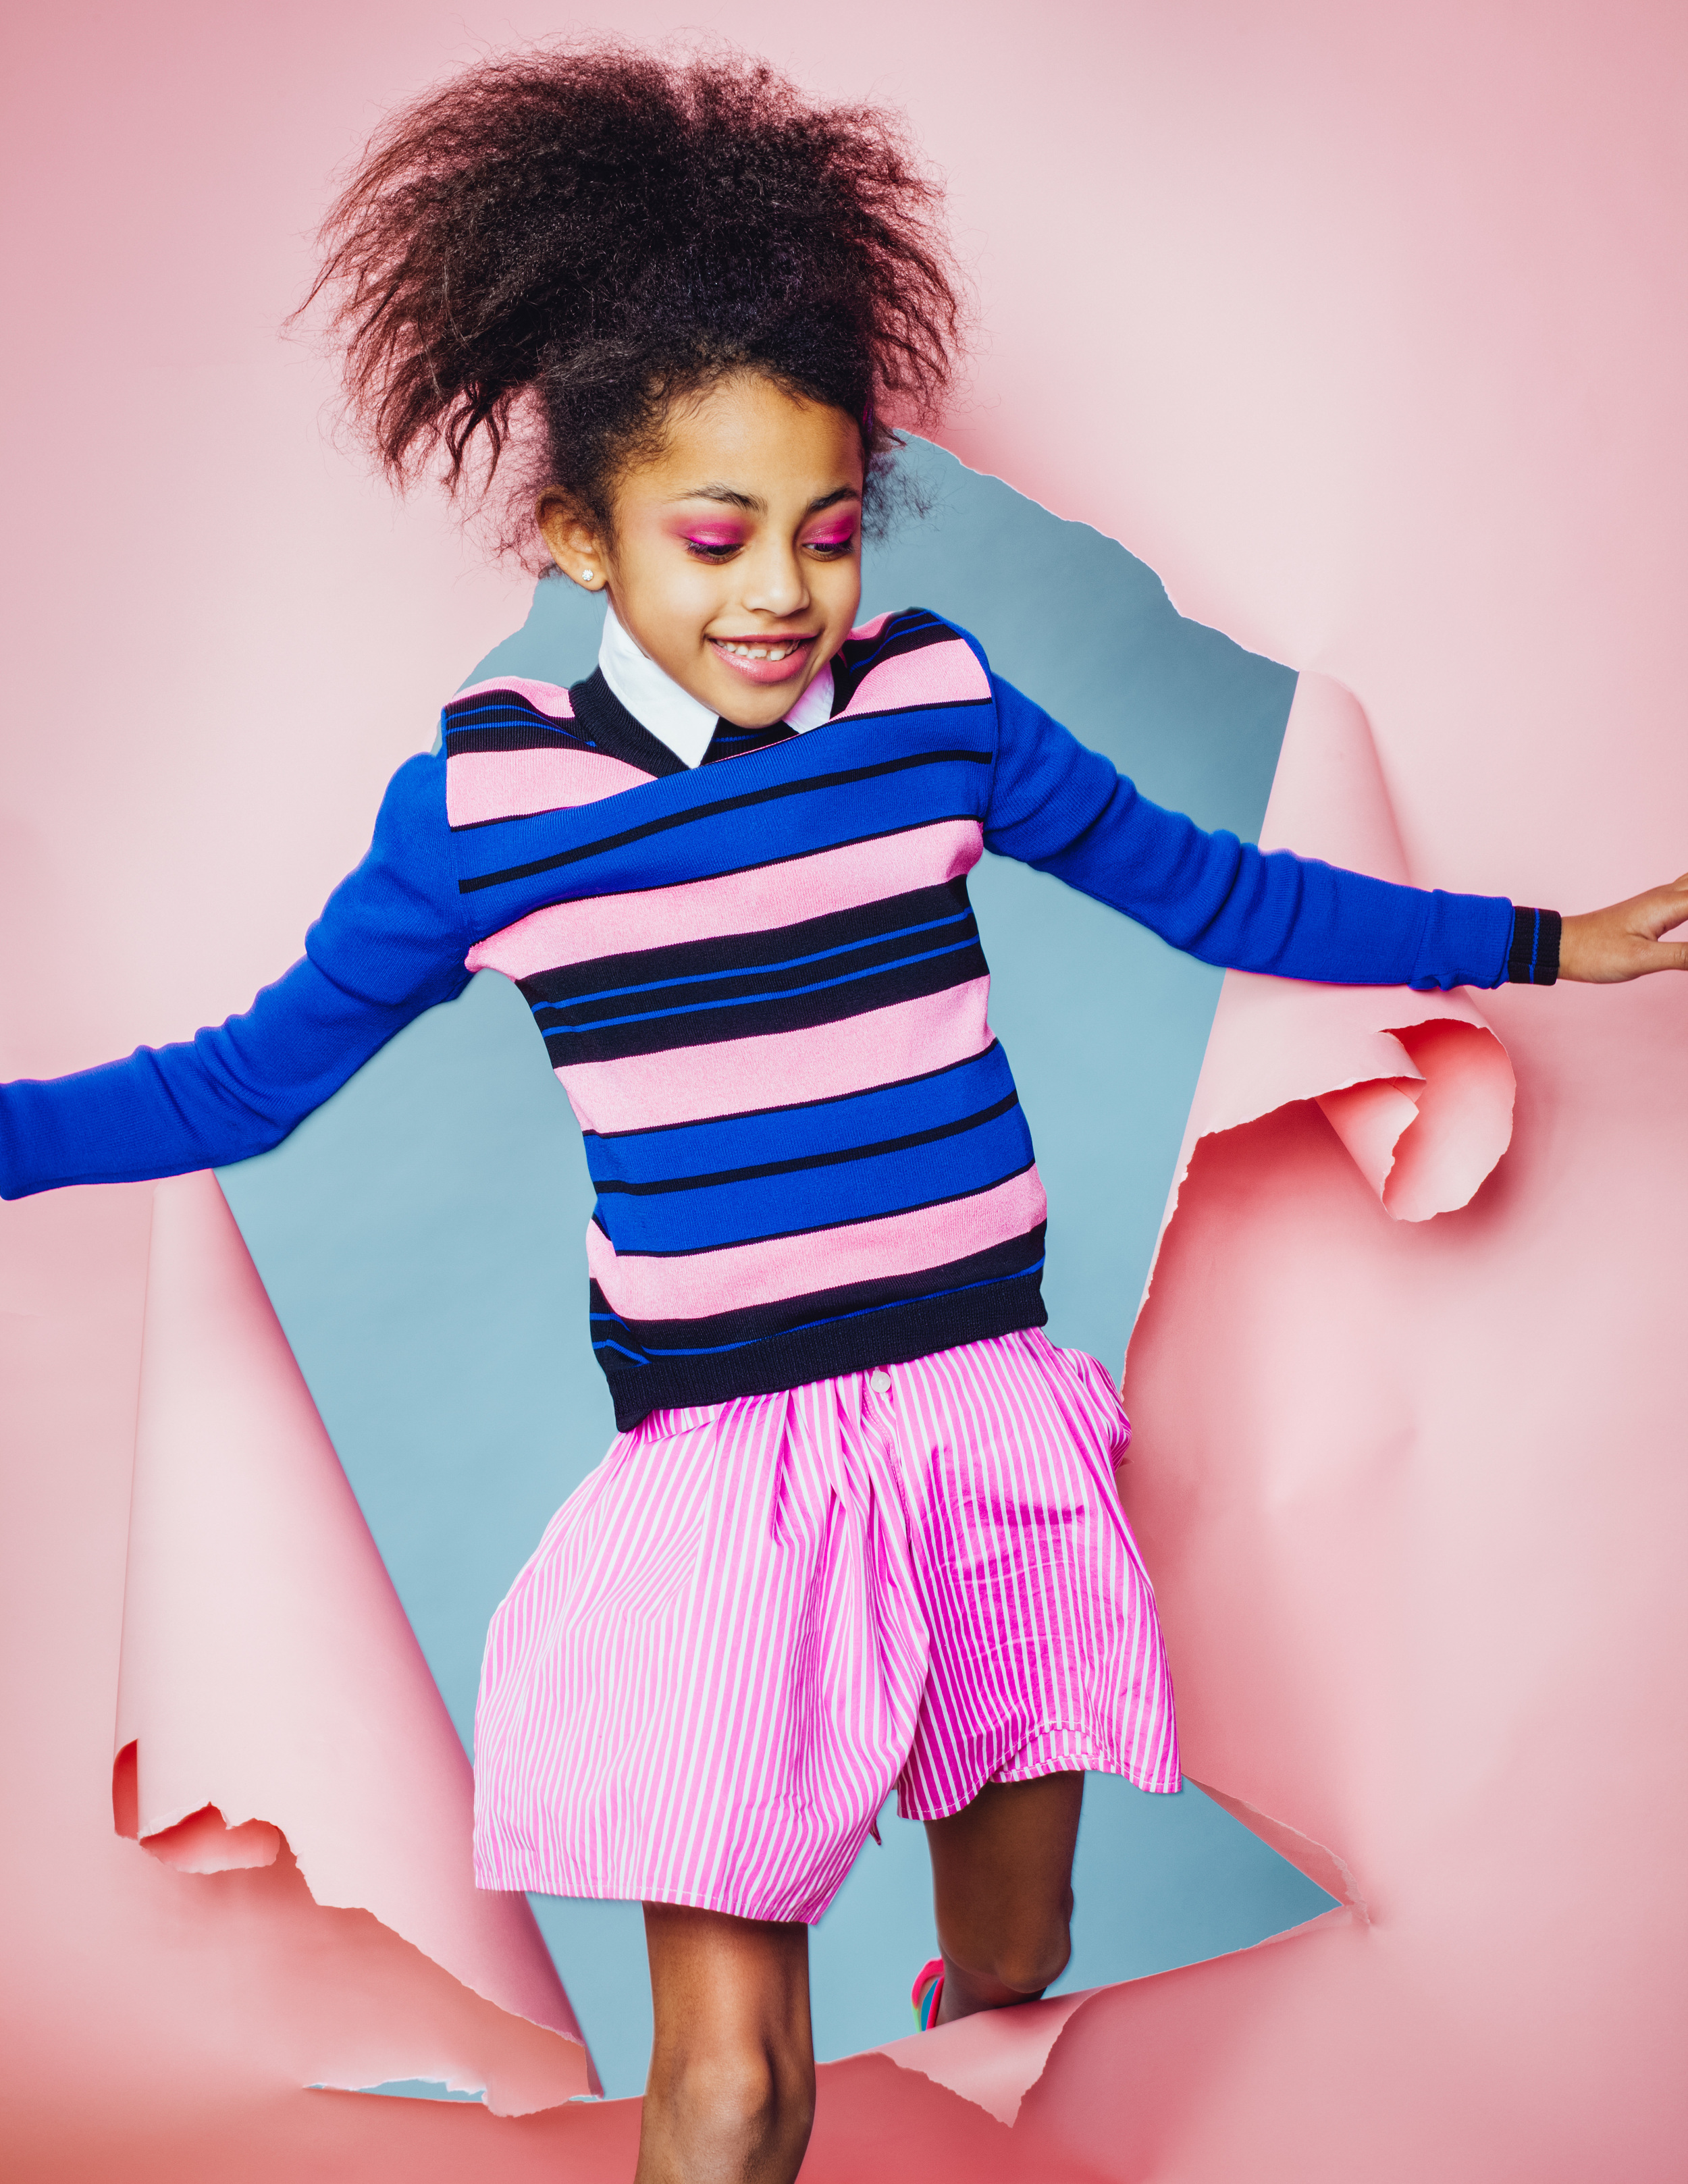 Paper Chase Kids Editorial by Mark Binks